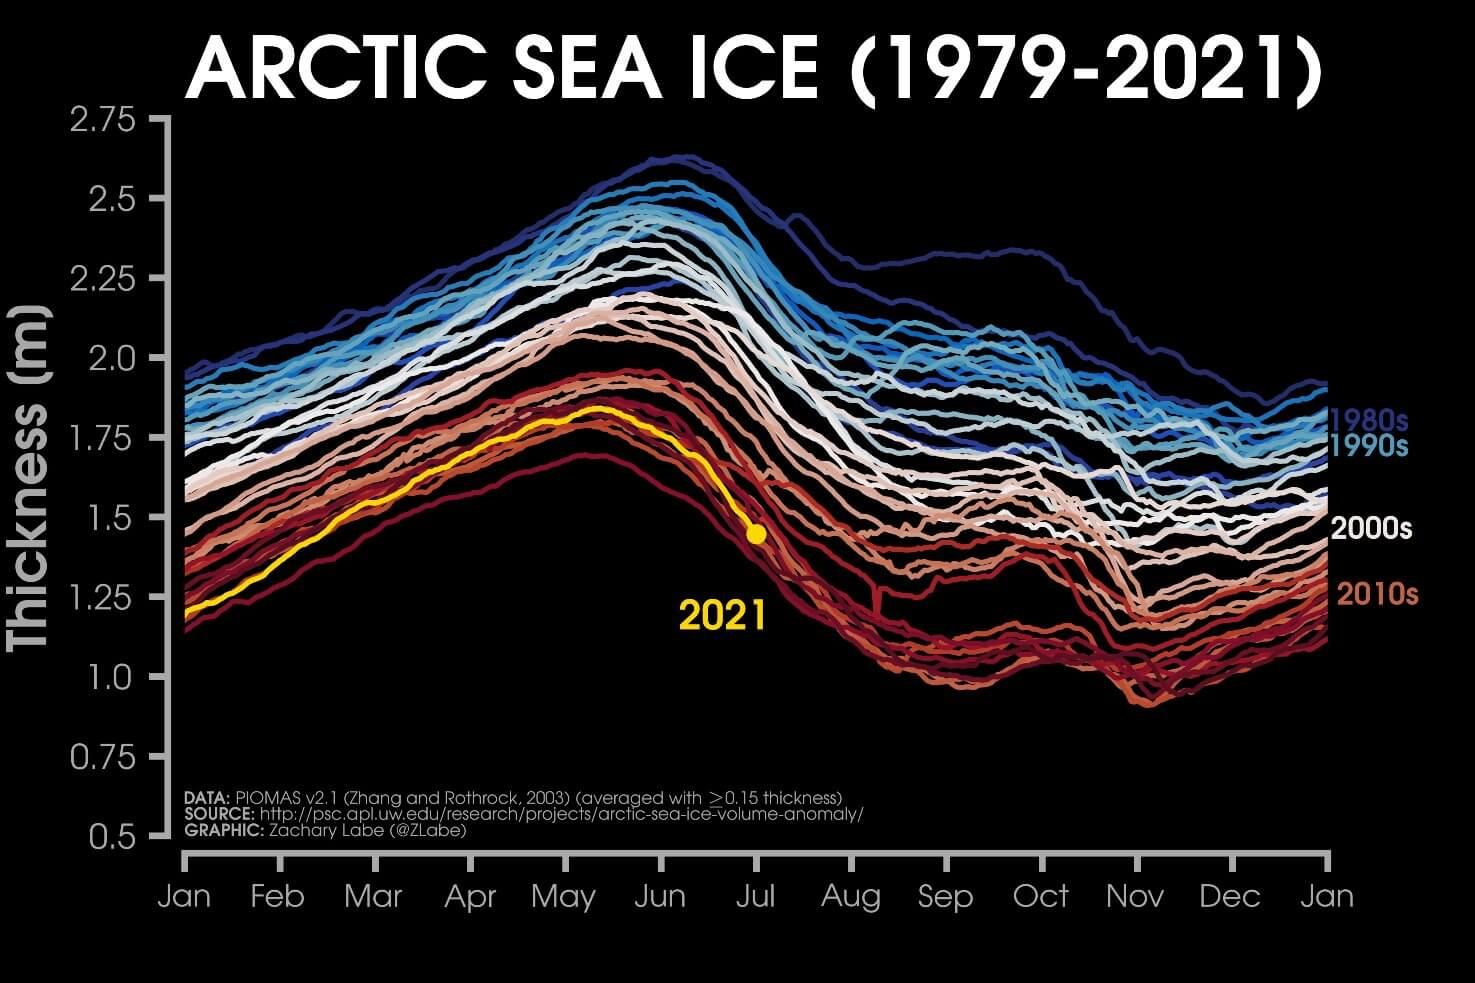 arctic-sea-ice-thickness-graph-comparison-by-years